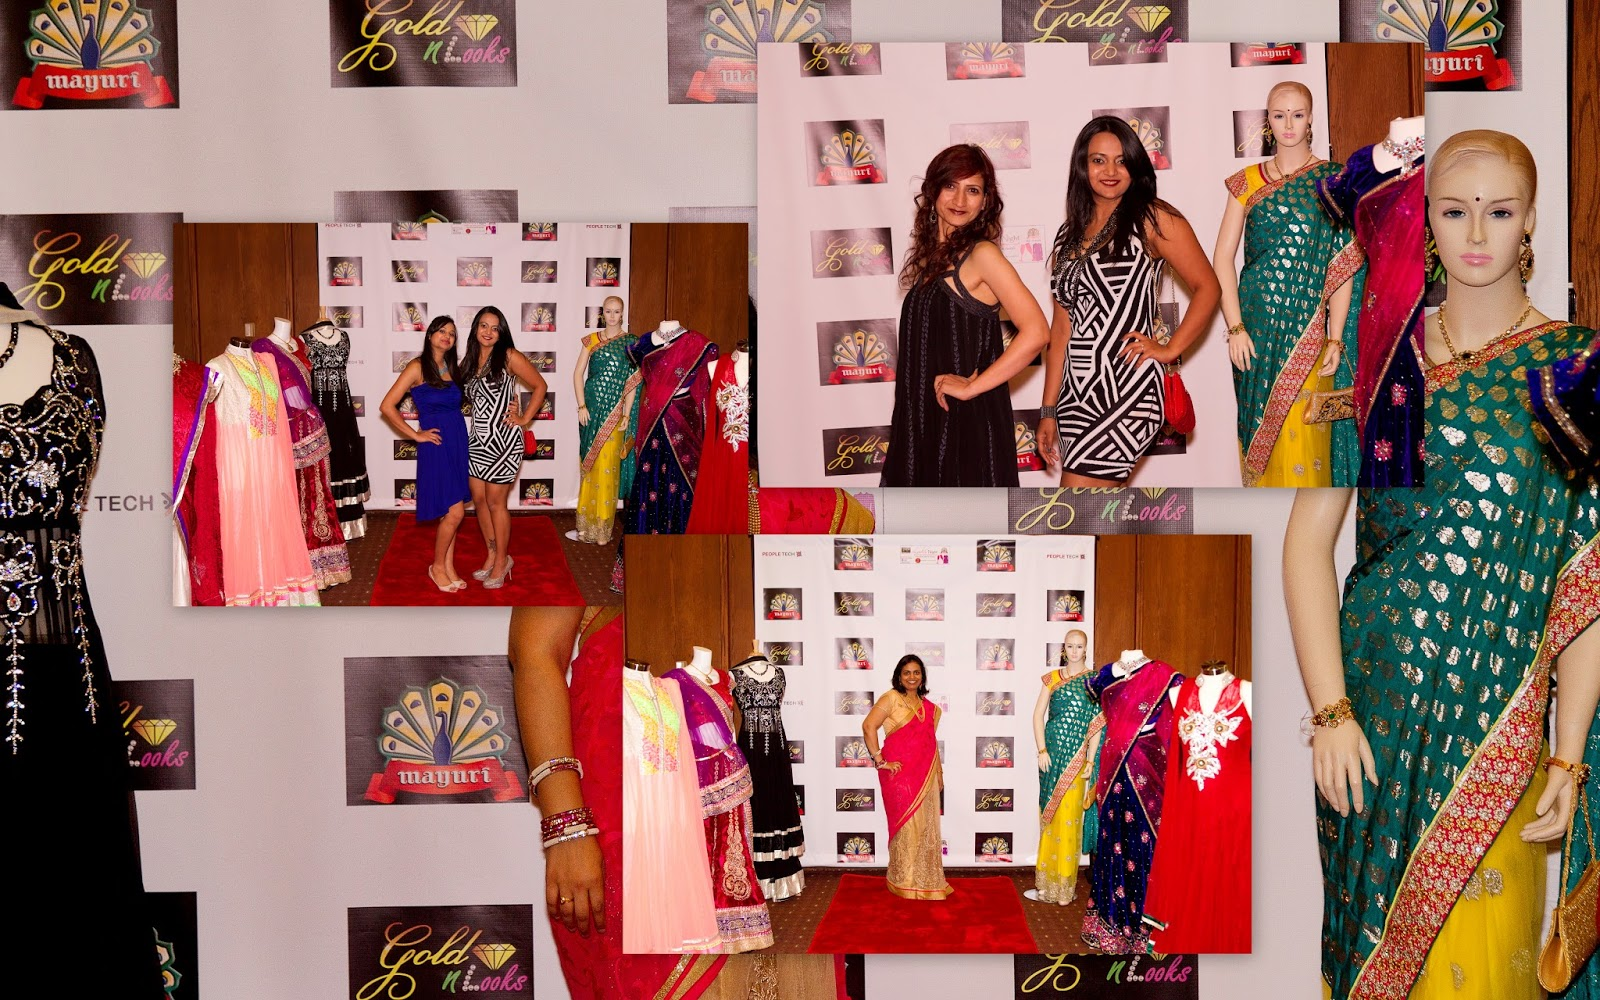 Ladies fun night, indian boutiques party, USA indian party, Seattle Indian events